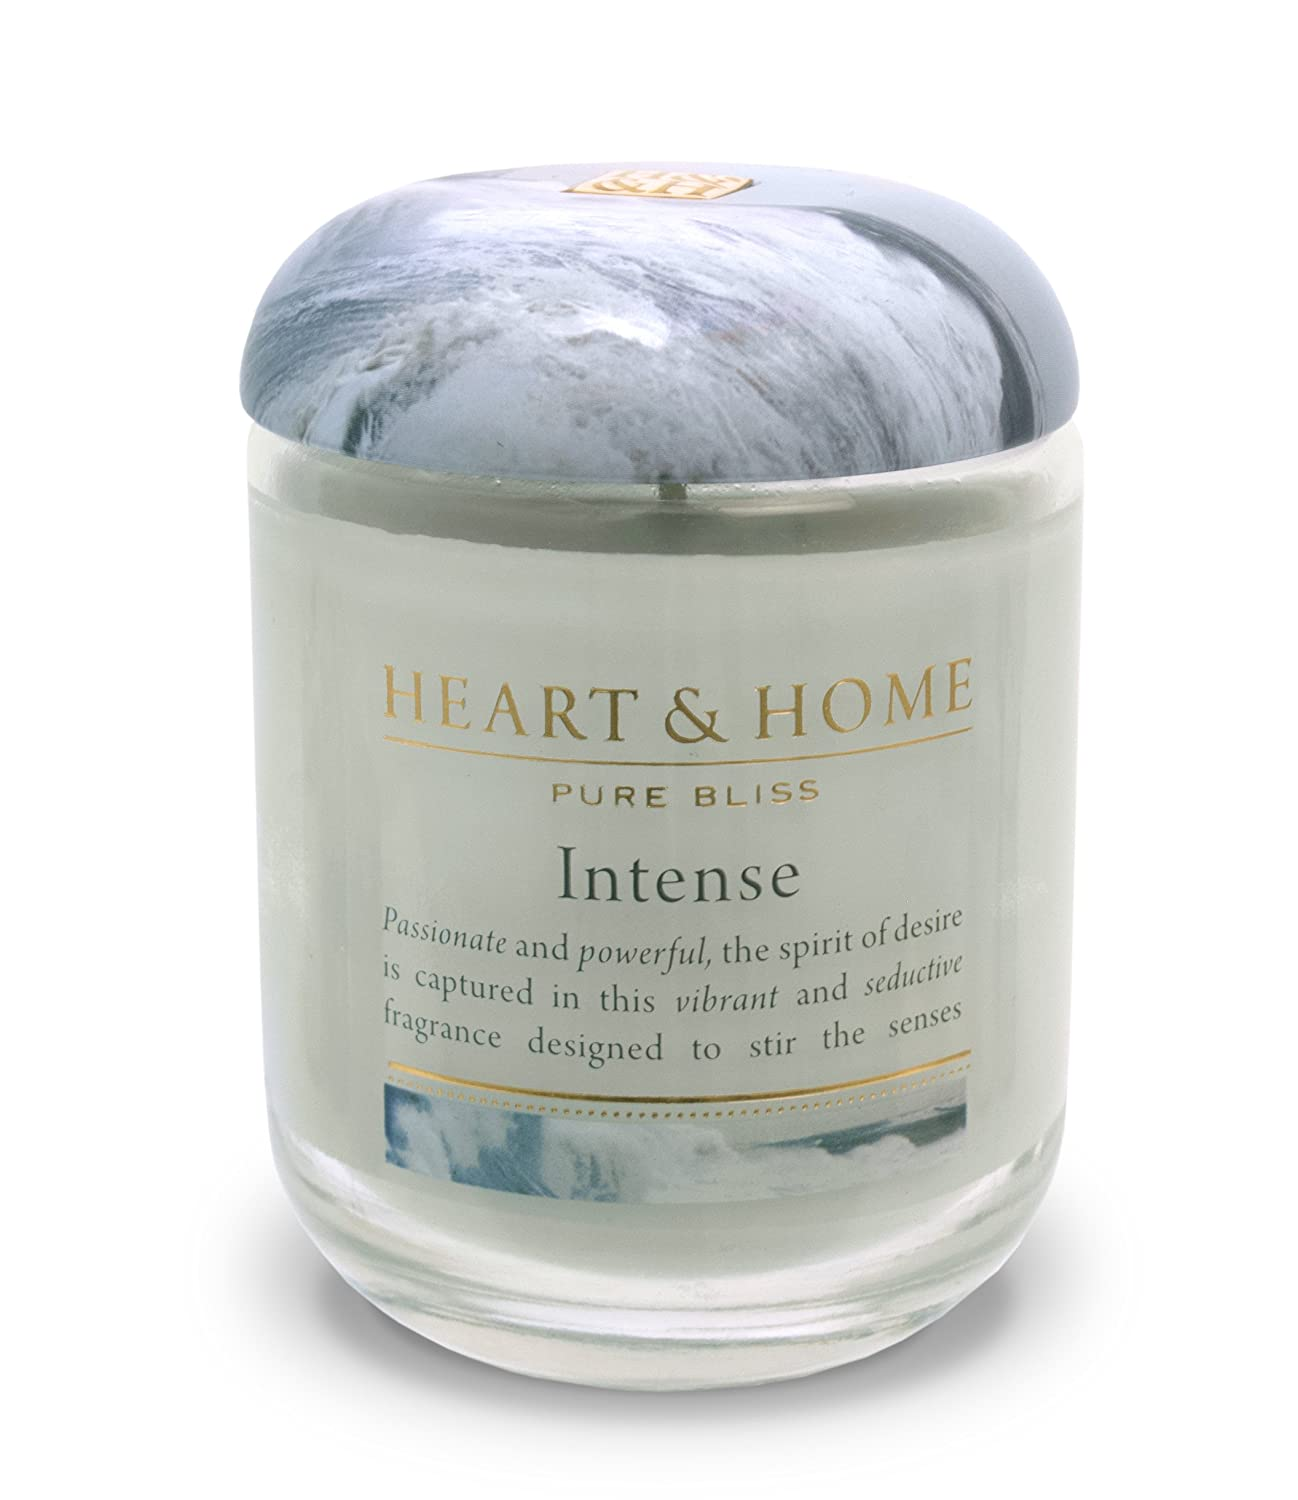 Heart & Home Large Glass Intense Candle History & Heraldry 00275000302